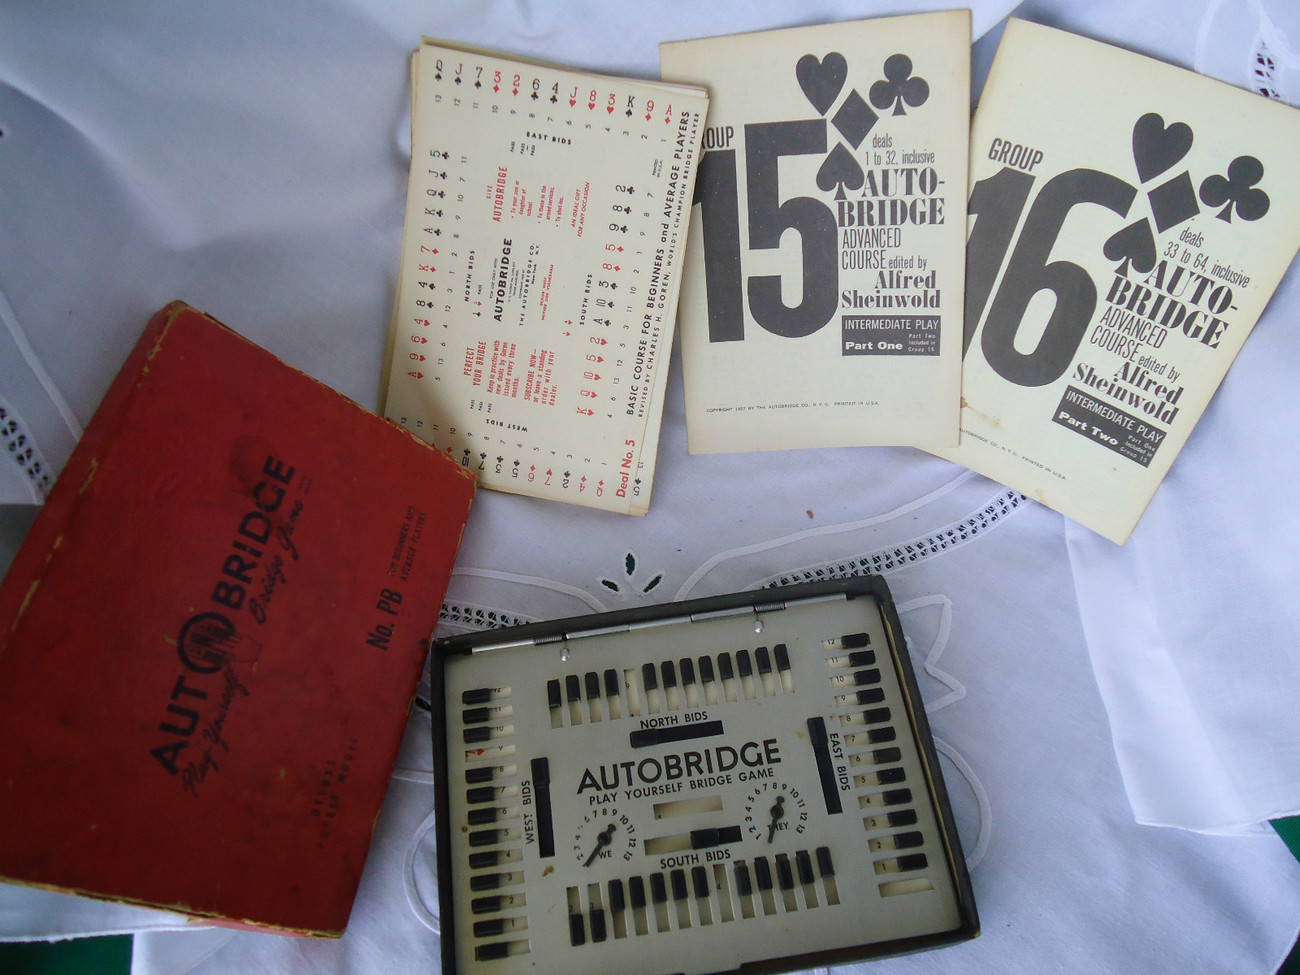 Vintage 1957 Autobridge Auto Bridge Game Deluxe Pocket